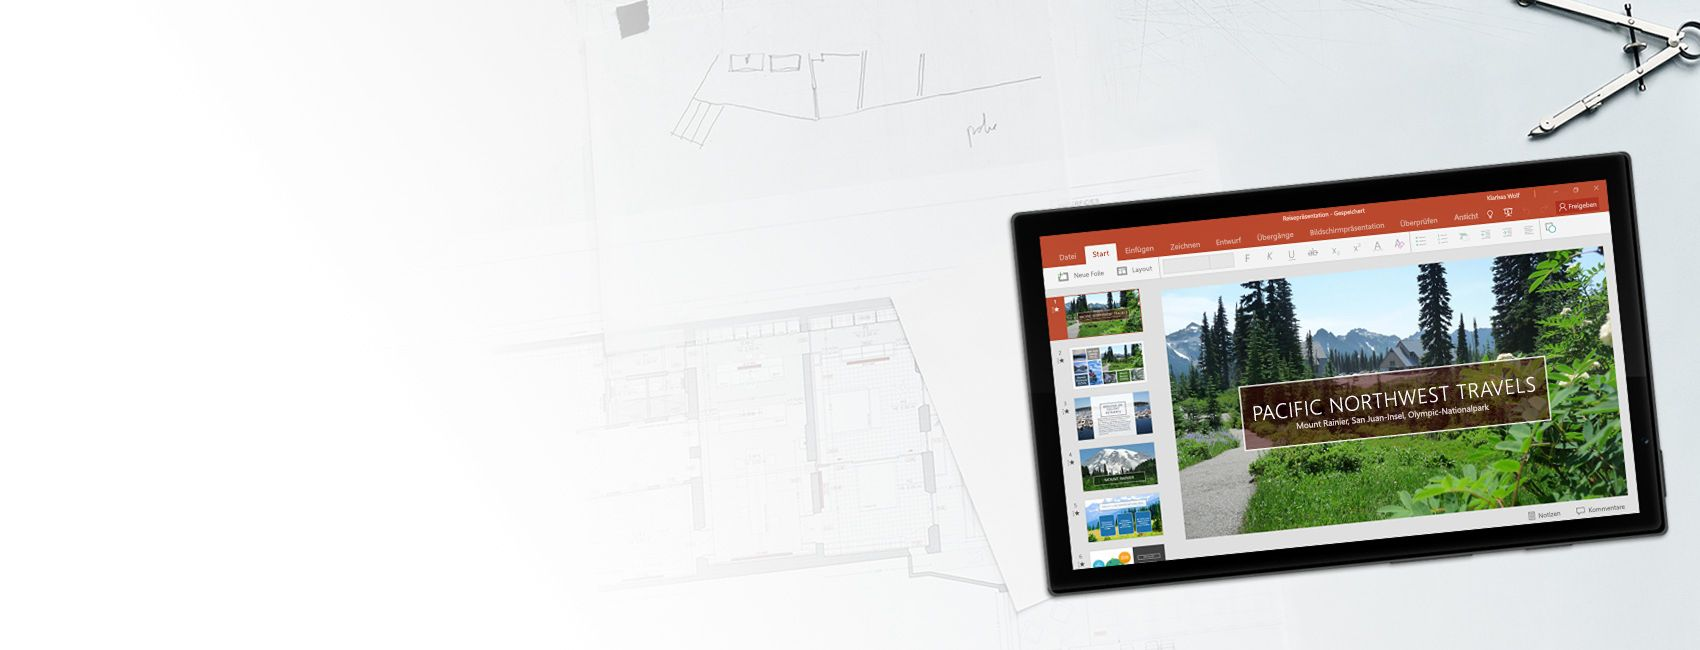 Windows-Tablet mit einer PowerPoint-Präsentation zu Nordwestpazifik-Reisen in PowerPoint für Windows 10 Mobile